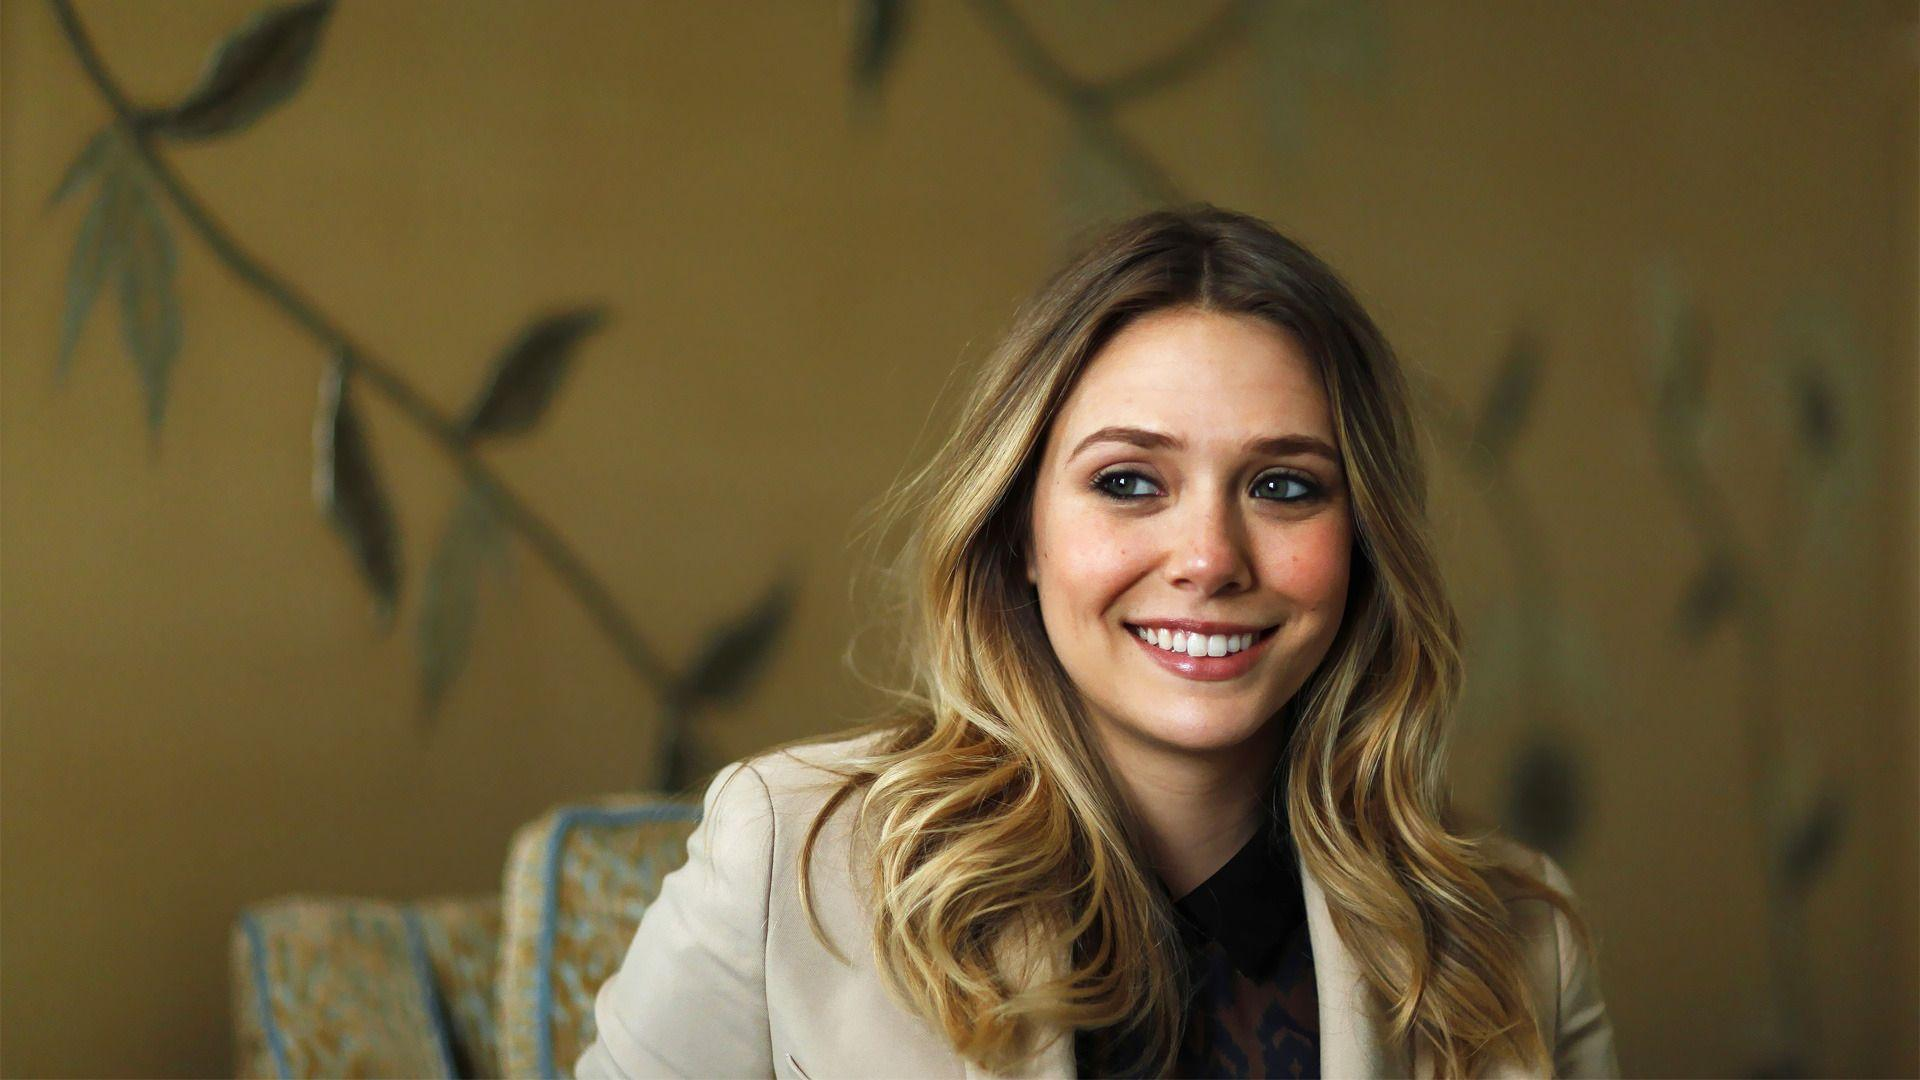 Elizabeth Olsen Computer Wallpapers, Desktop Backgrounds ...